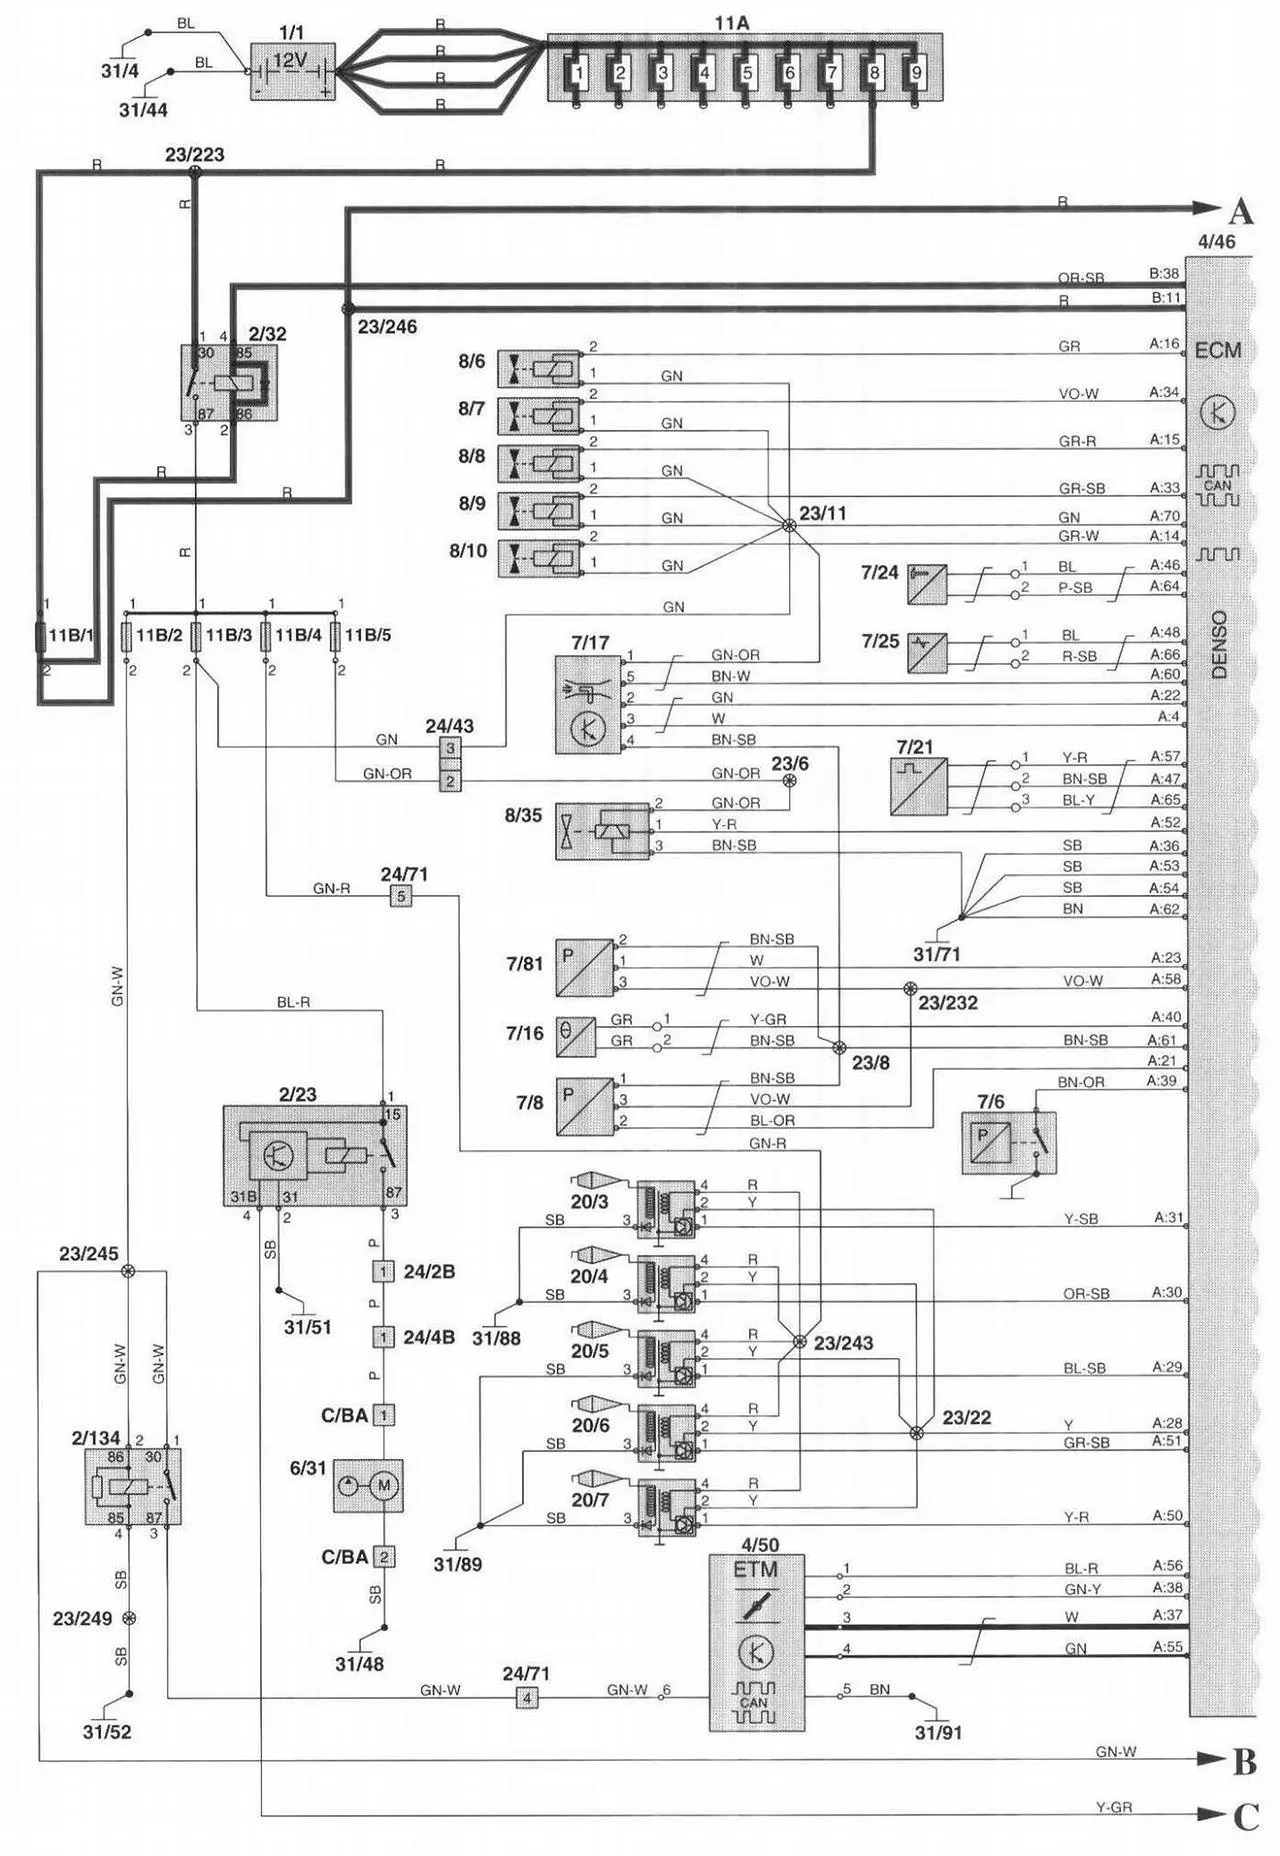 small resolution of 99 volvo s80 wiring diagram wiring schematic diagram 127 fiercemc covolvo s80 wiring diagram wiring diagram